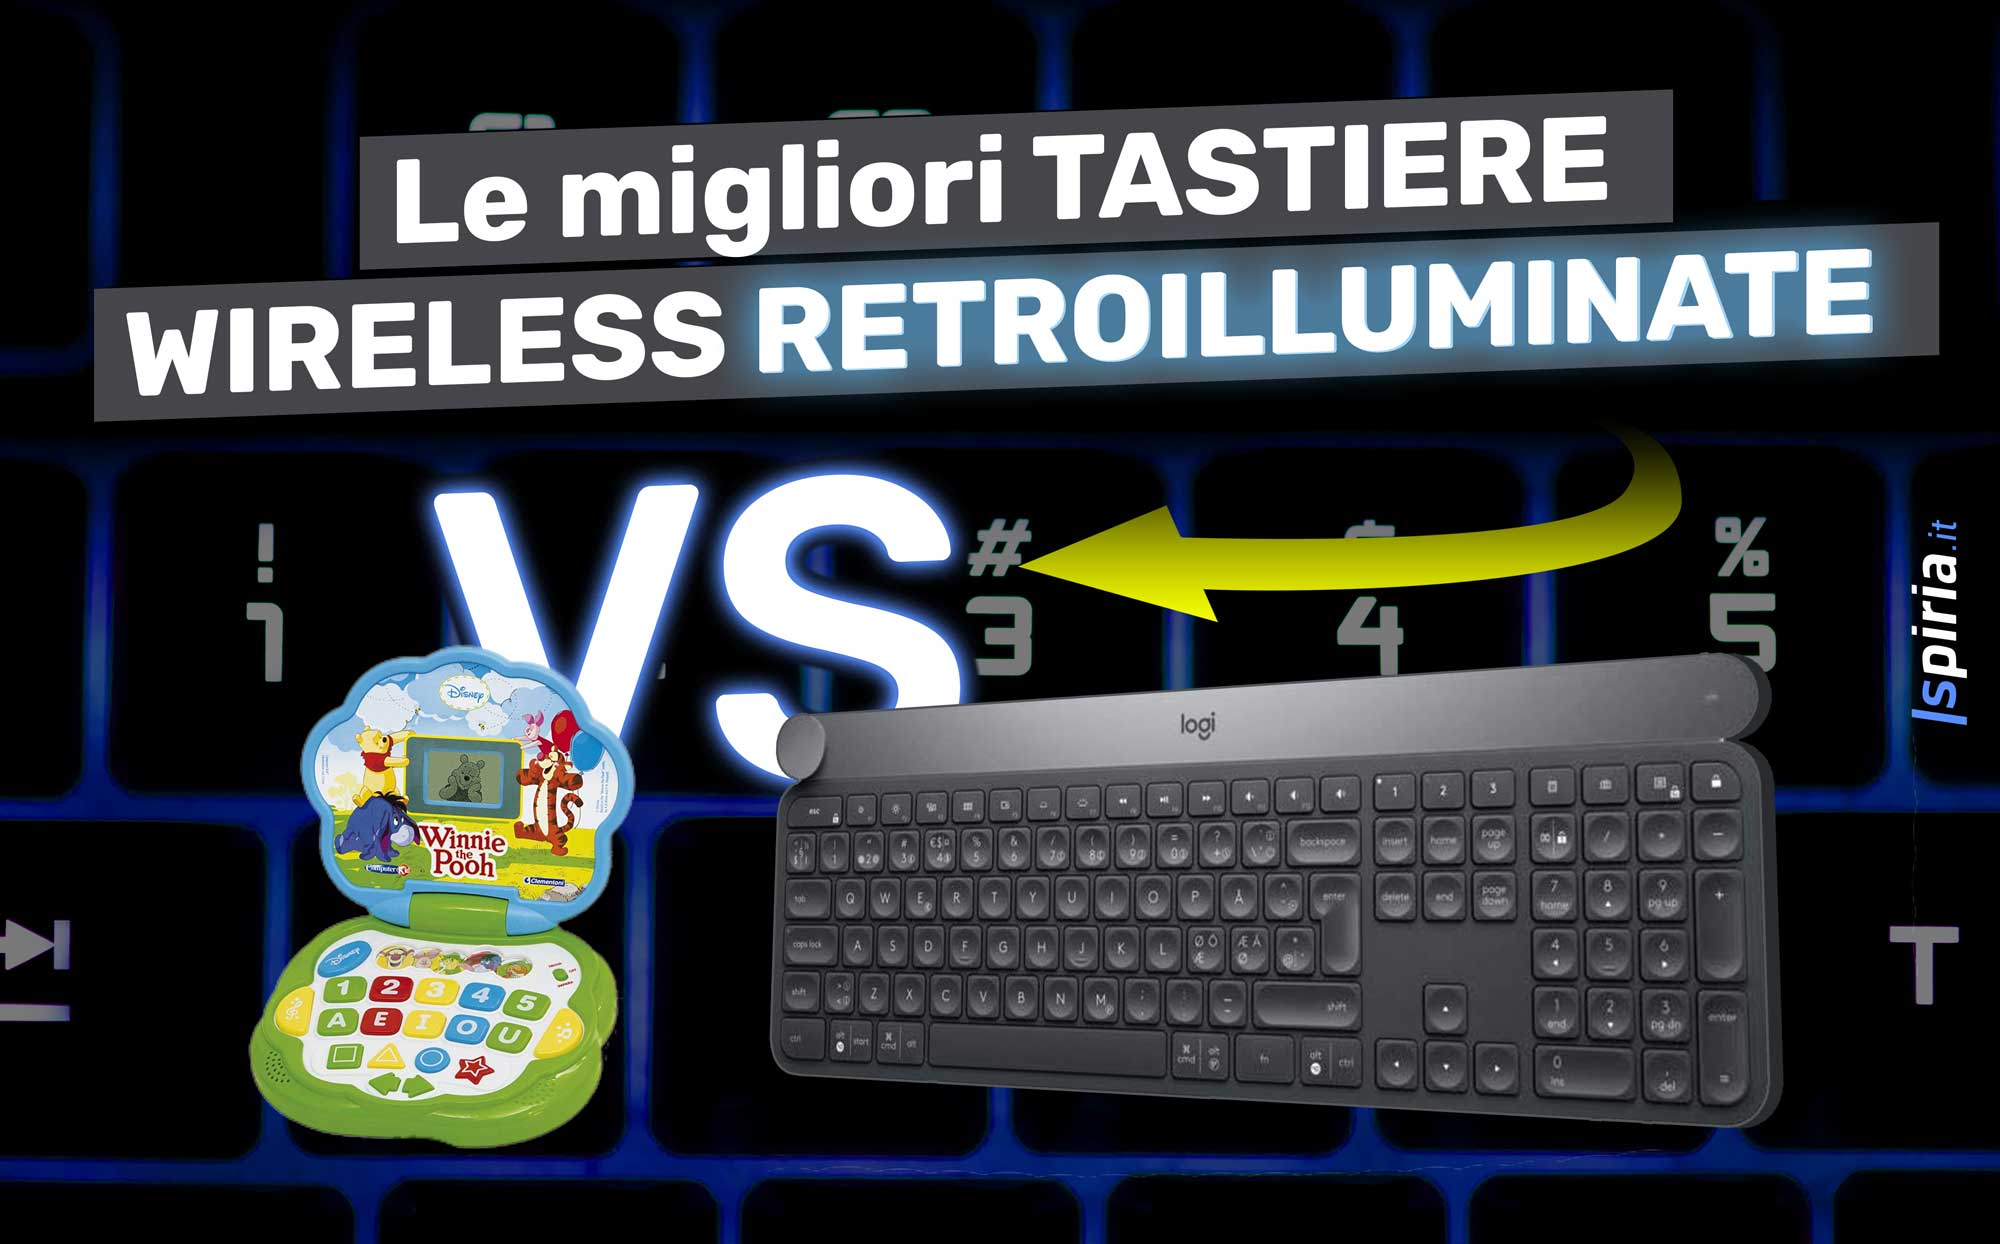 migliori tastiere wireless retroilluminate